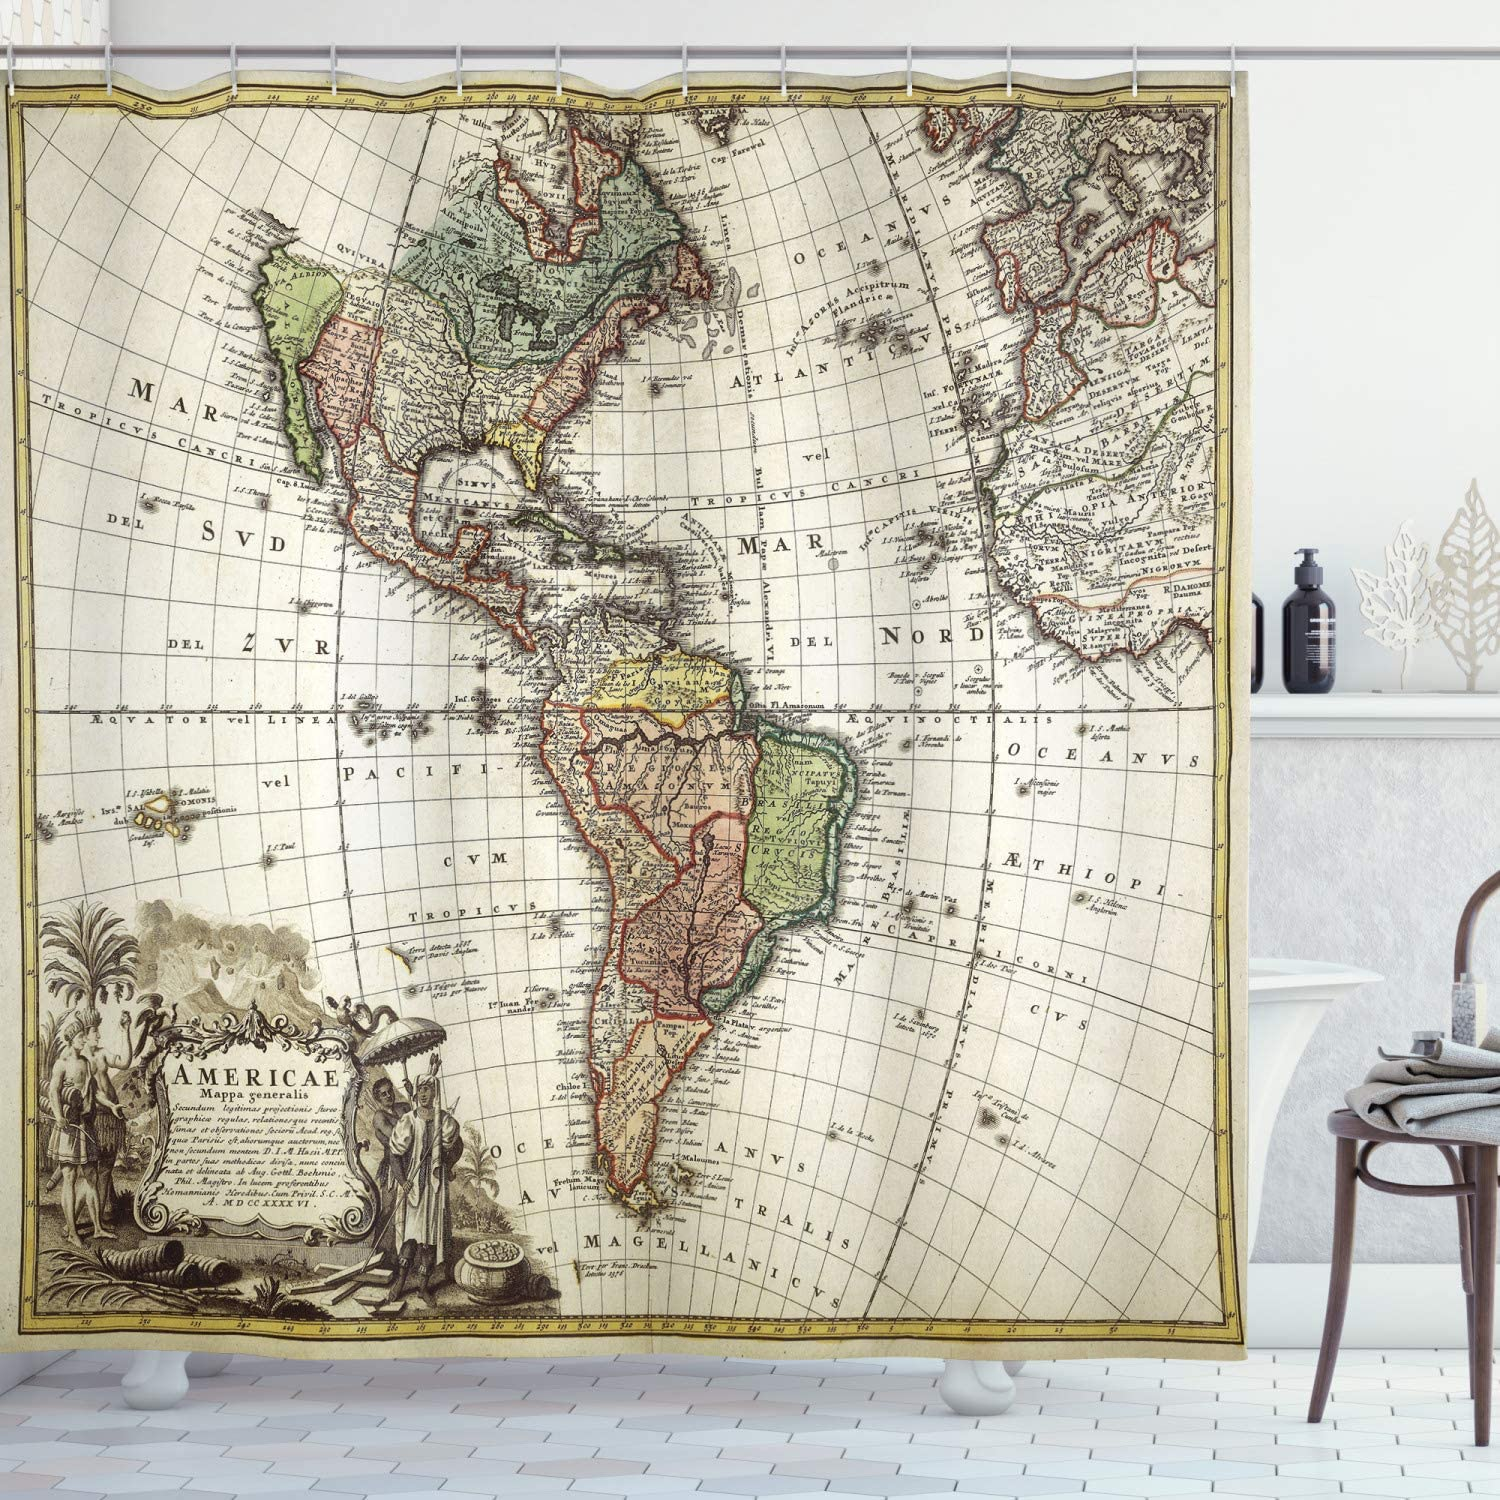 Ambesonne Wanderlust Shower Curtain, Old Map Europe North South America Canada Medieval Atlantic Heritage Travel, Cloth Fabric Bathroom Decor Set with Hooks, 70